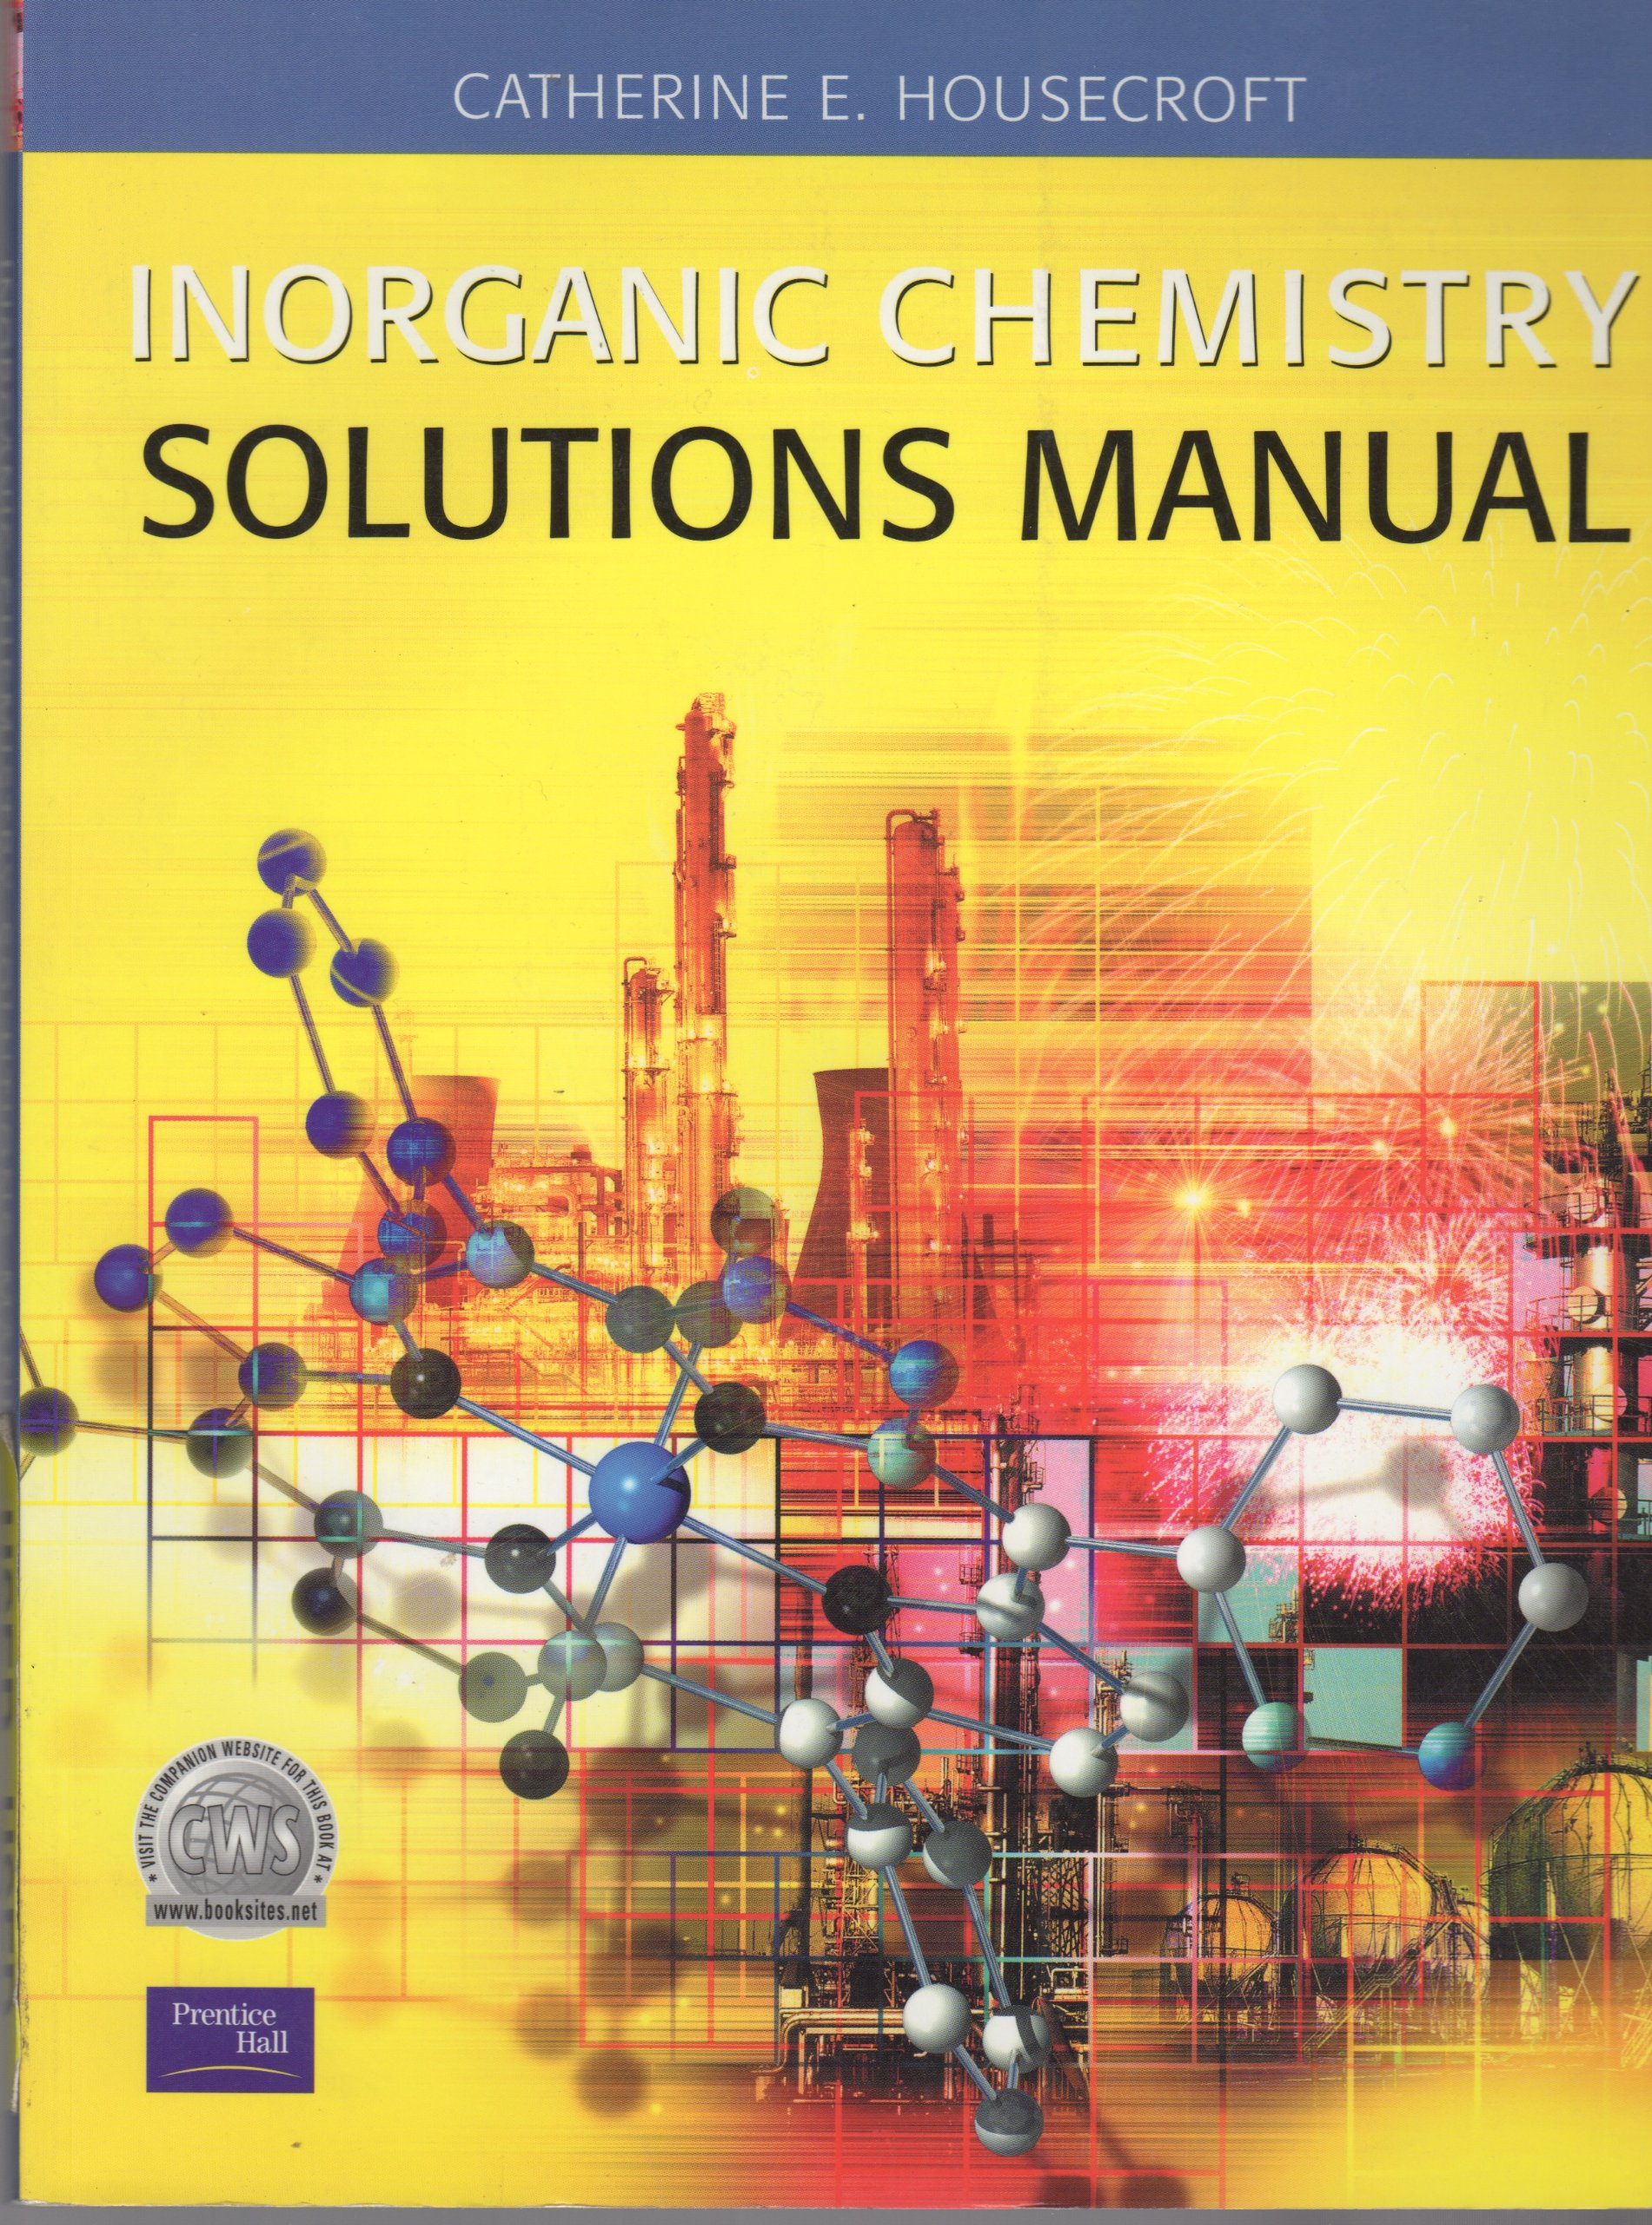 Buy Inorganic Chemistry Solutions Manual Book Online at Low Prices in India    Inorganic Chemistry Solutions Manual Reviews & Ratings - Amazon.in